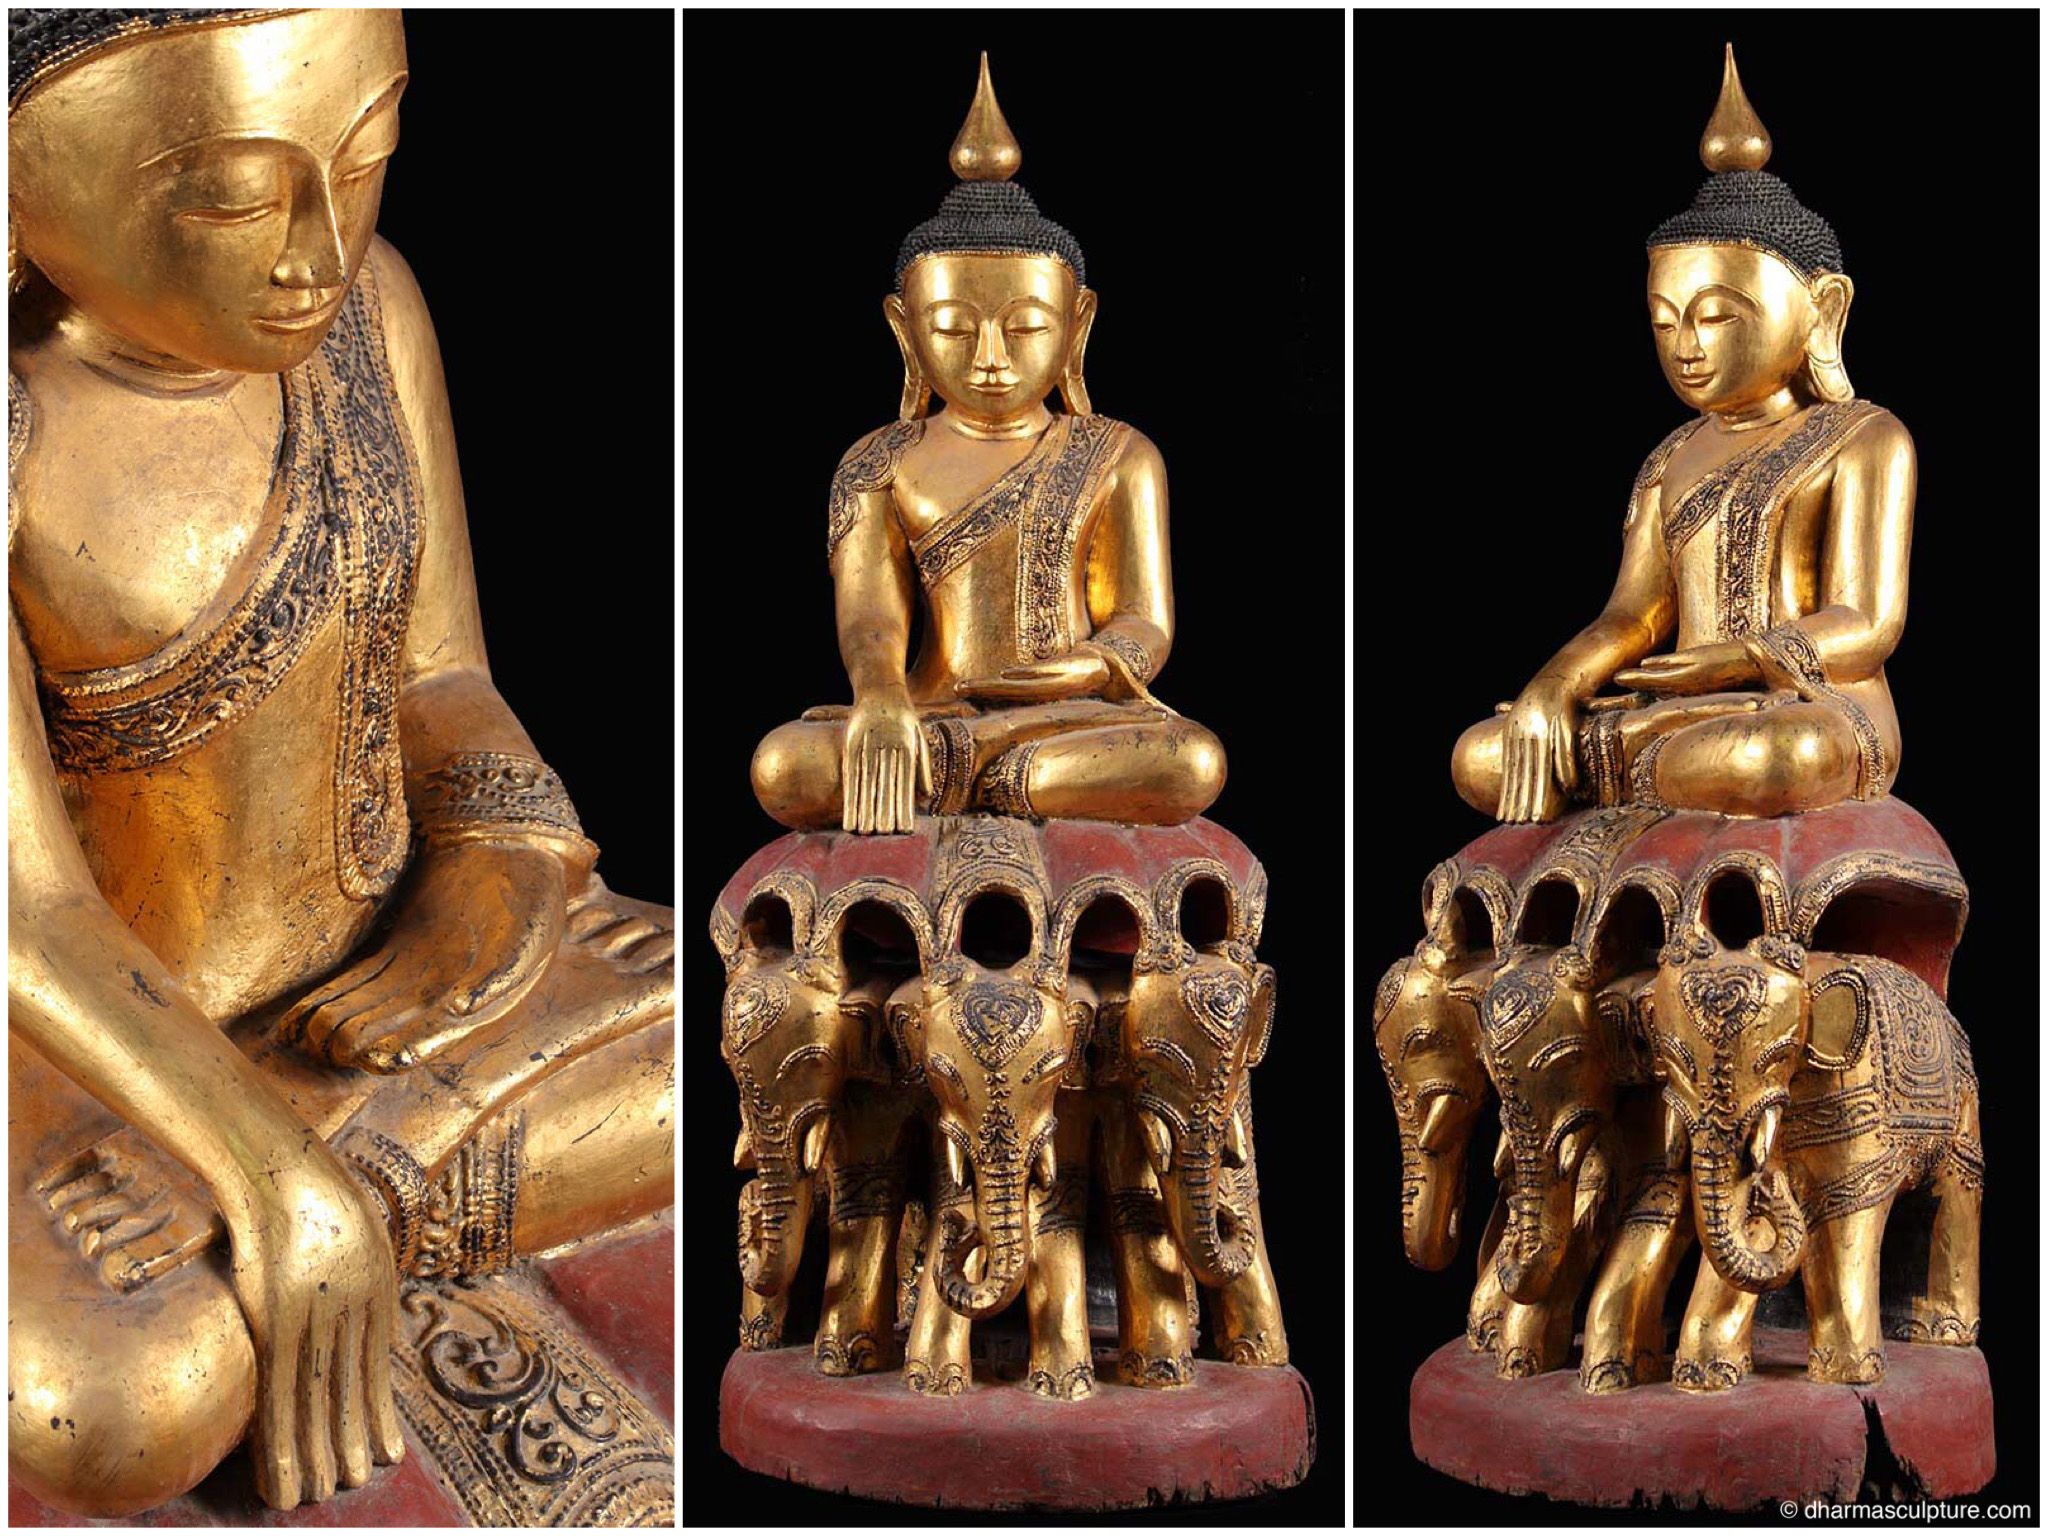 Dharma sculpture blog page 2 of 5 buddha statues buddha this serene golden burmese buddha statue is seated in padmasana with the left hand resting on his lap and right hand extending over the knee in the buycottarizona